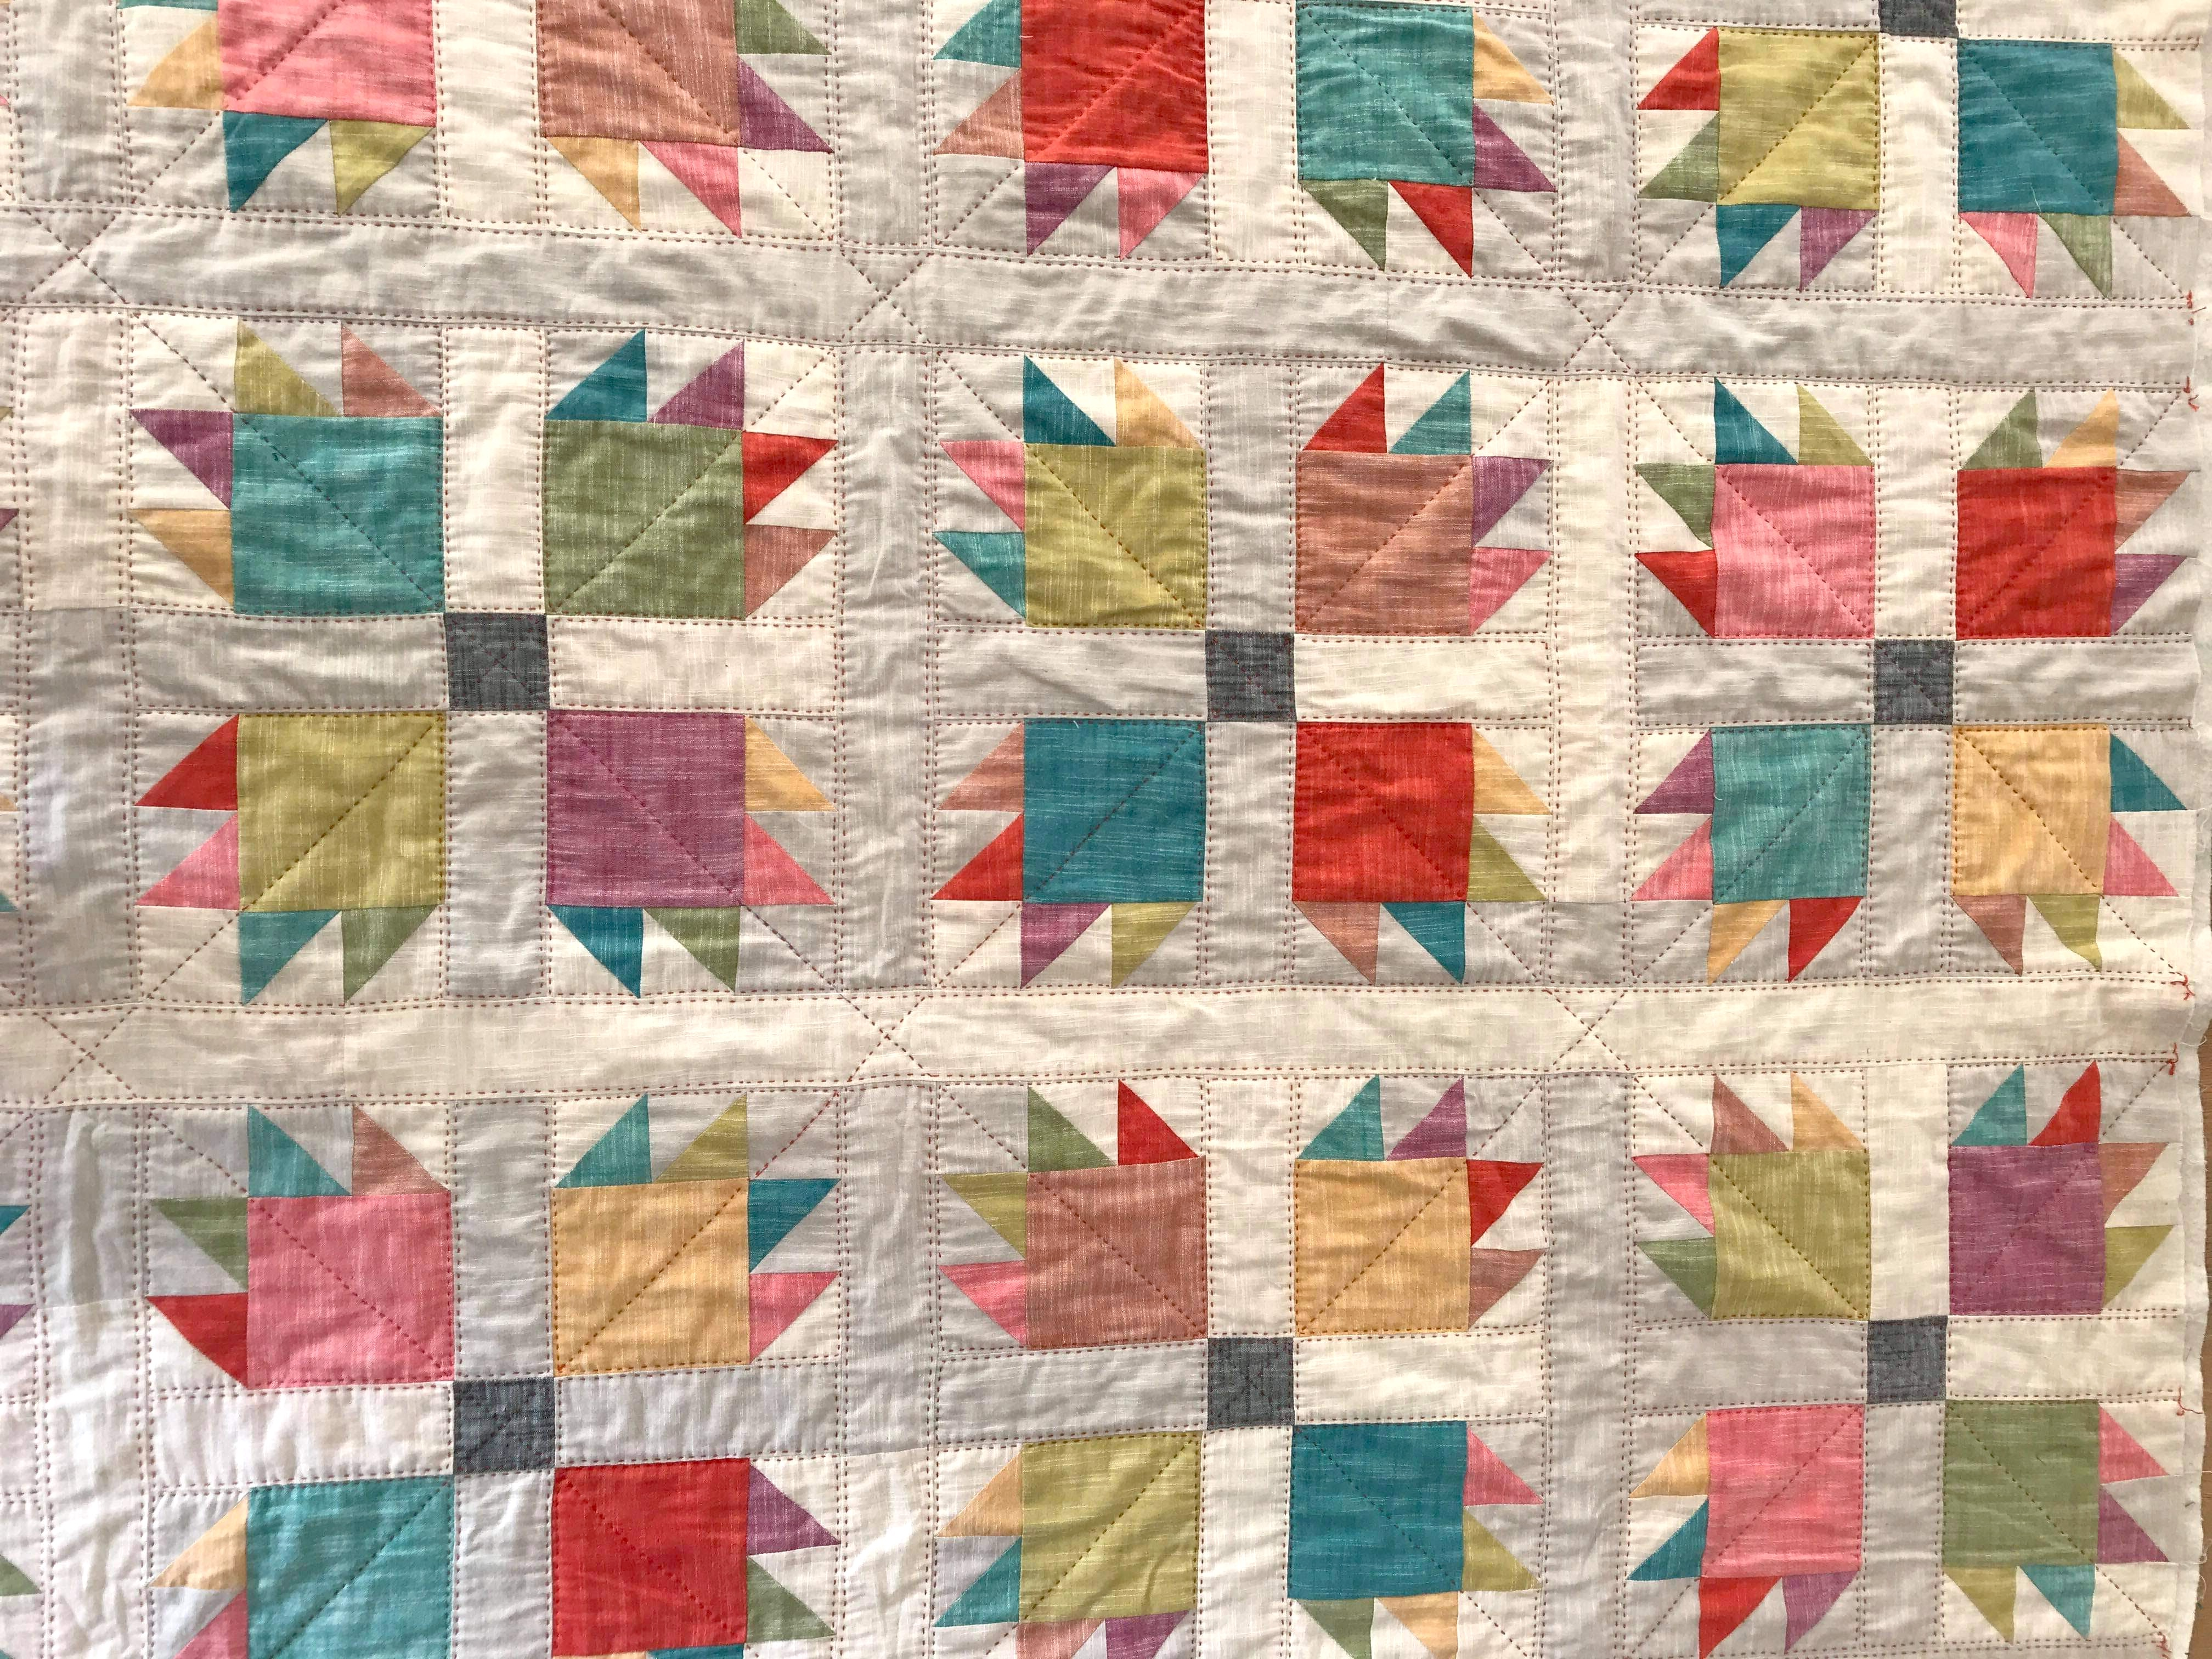 A bear paw quilt in a bright mix of solid Manchester fabrics, made by Sandra Dorse